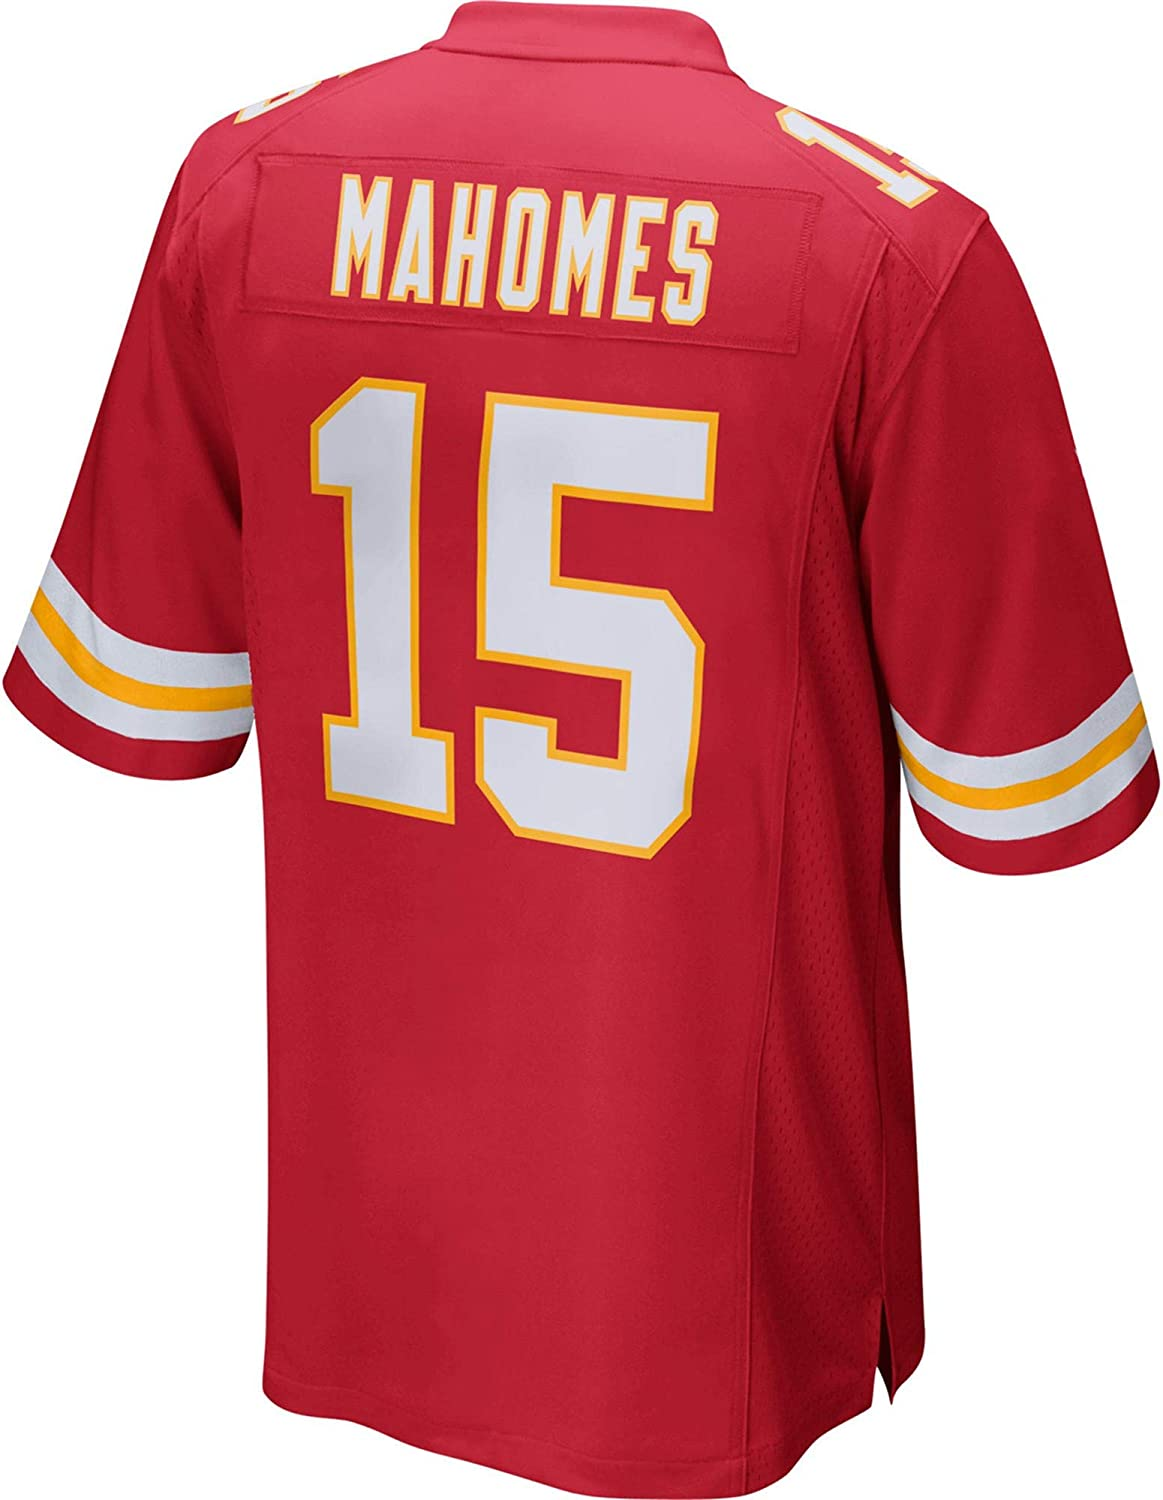 WOPOO Outdoor Jersey American Football Chiefs Kansas City Patrick Player Game Jersey Quick-Drying NO.15 Mahomes Outdoor Casual T-shirts Red